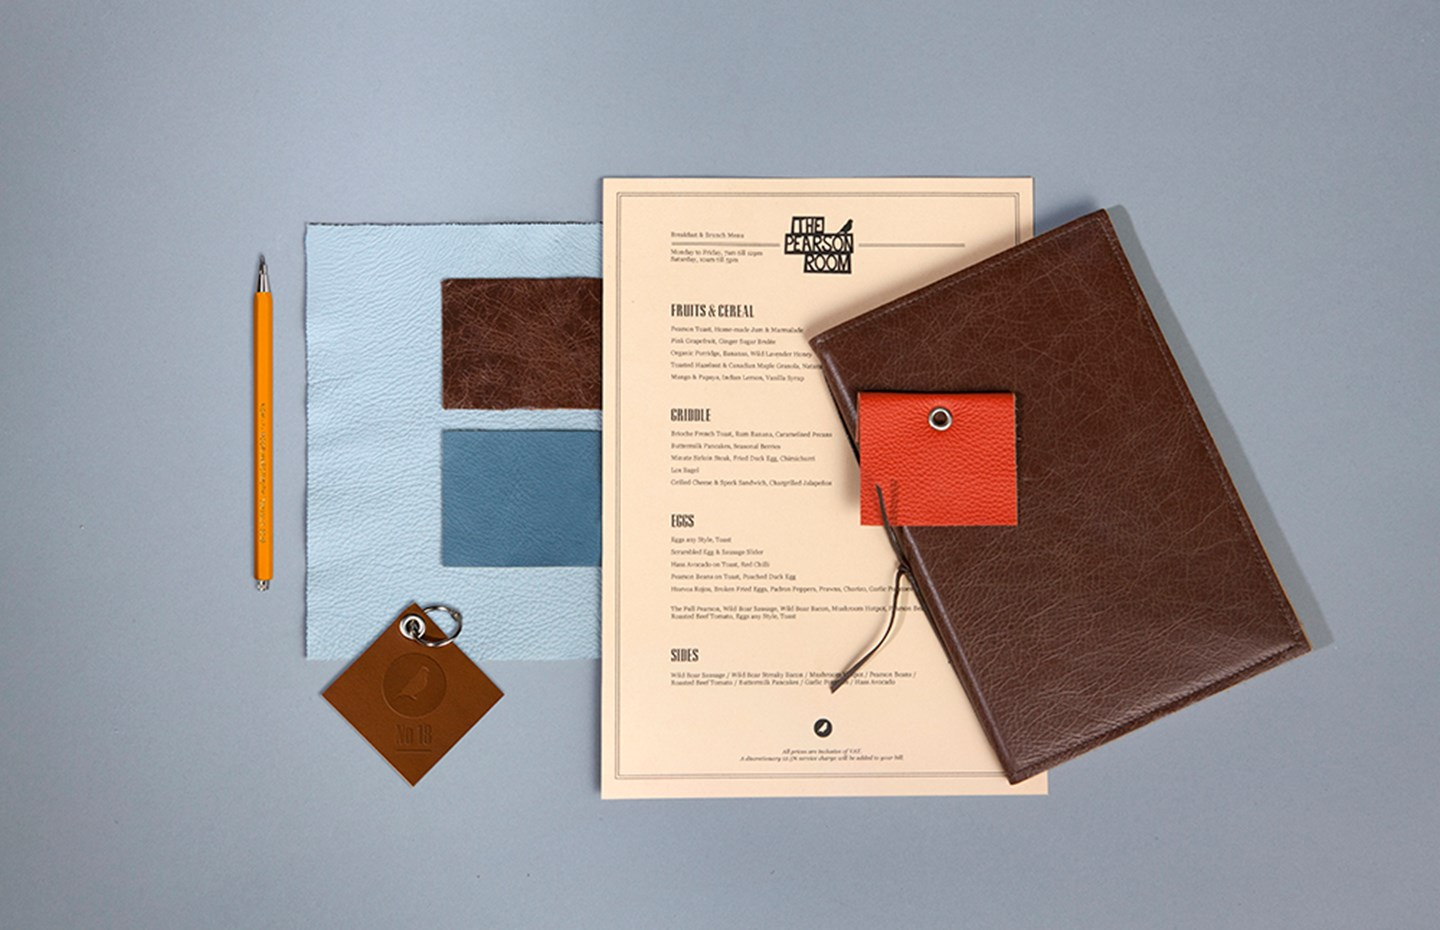 Menu design for Pearson Room, London - B3 Designers